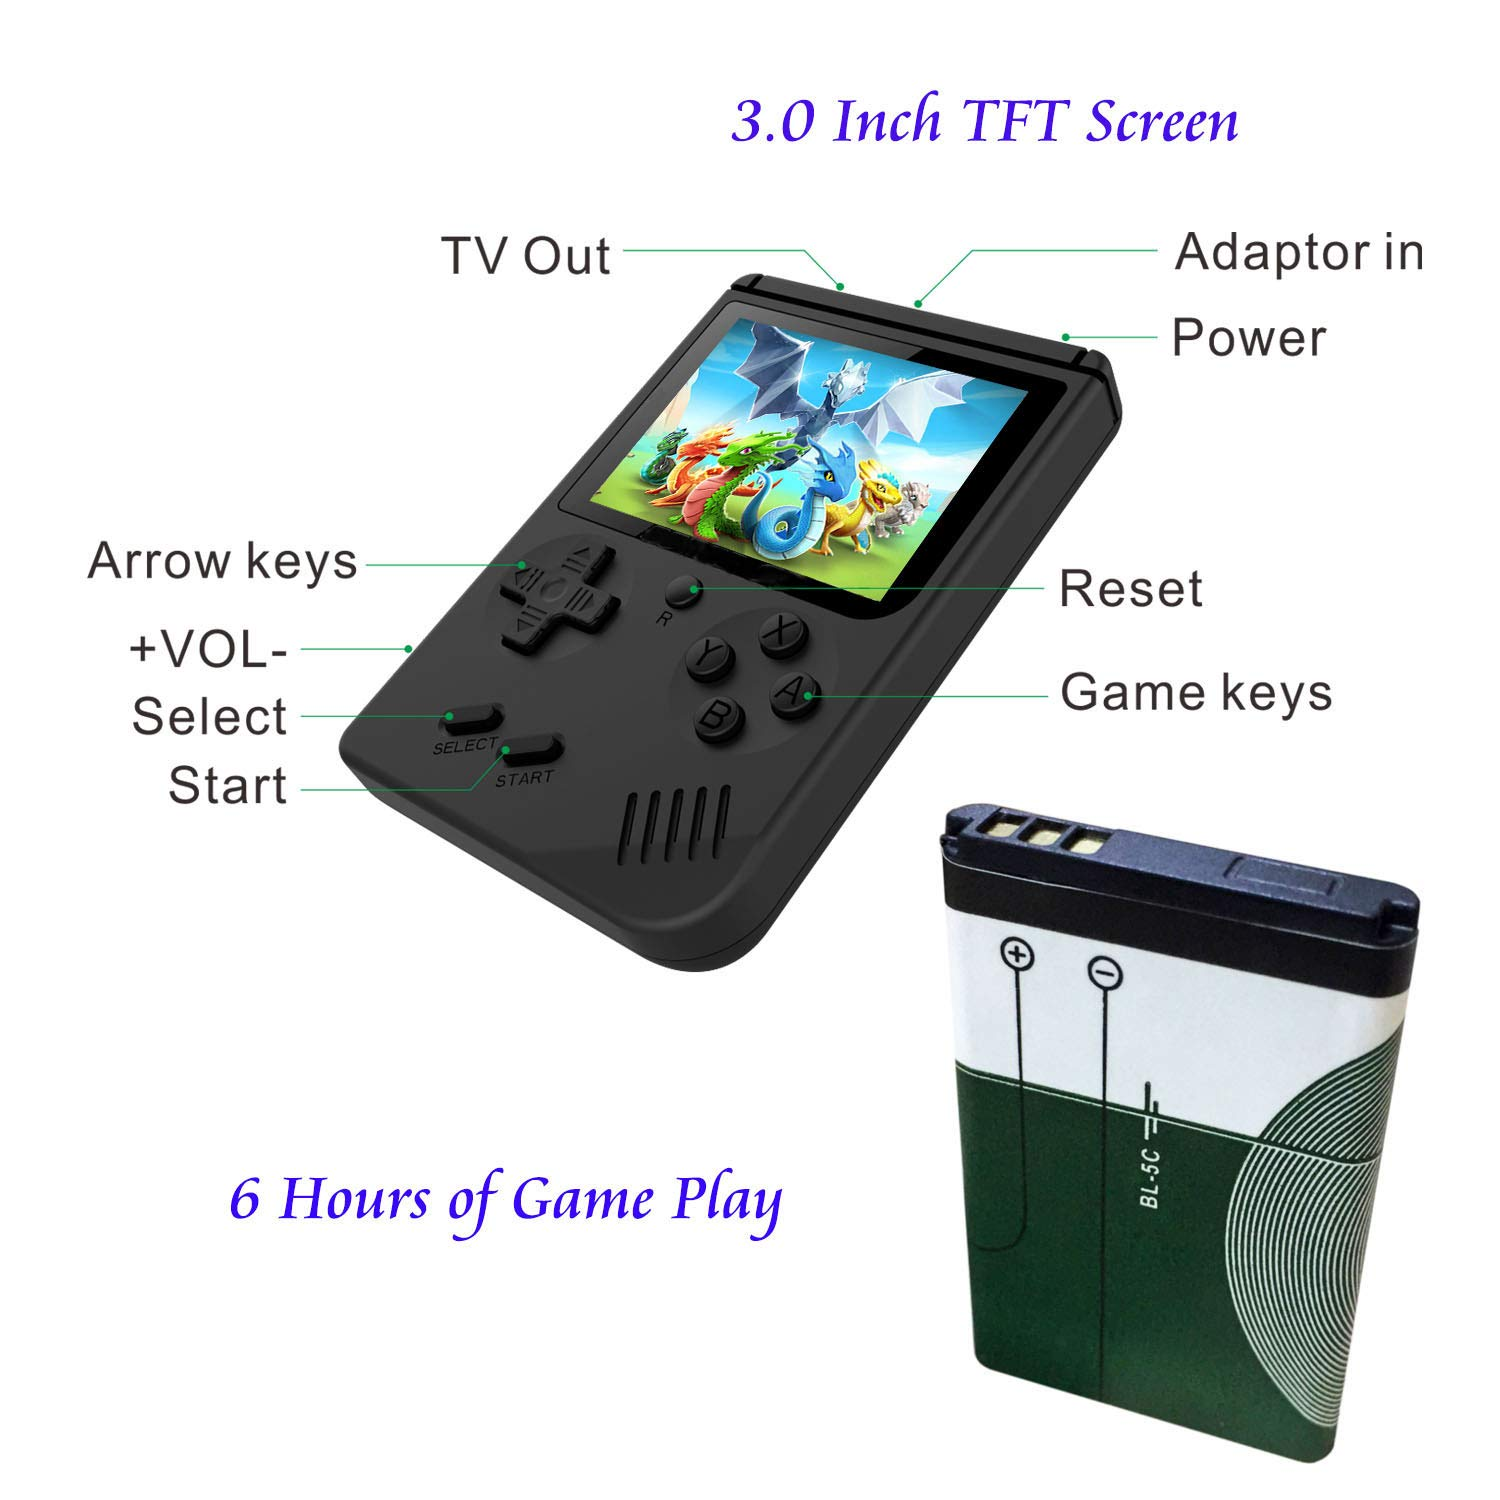 Handheld Games Console for Kids Adults - Retro Video Games Consoles 3 inch Screen 168 Classic Games 8 Bit Game Player with AV Cable Can Play on TV (Black) by Chilartalent (Image #3)